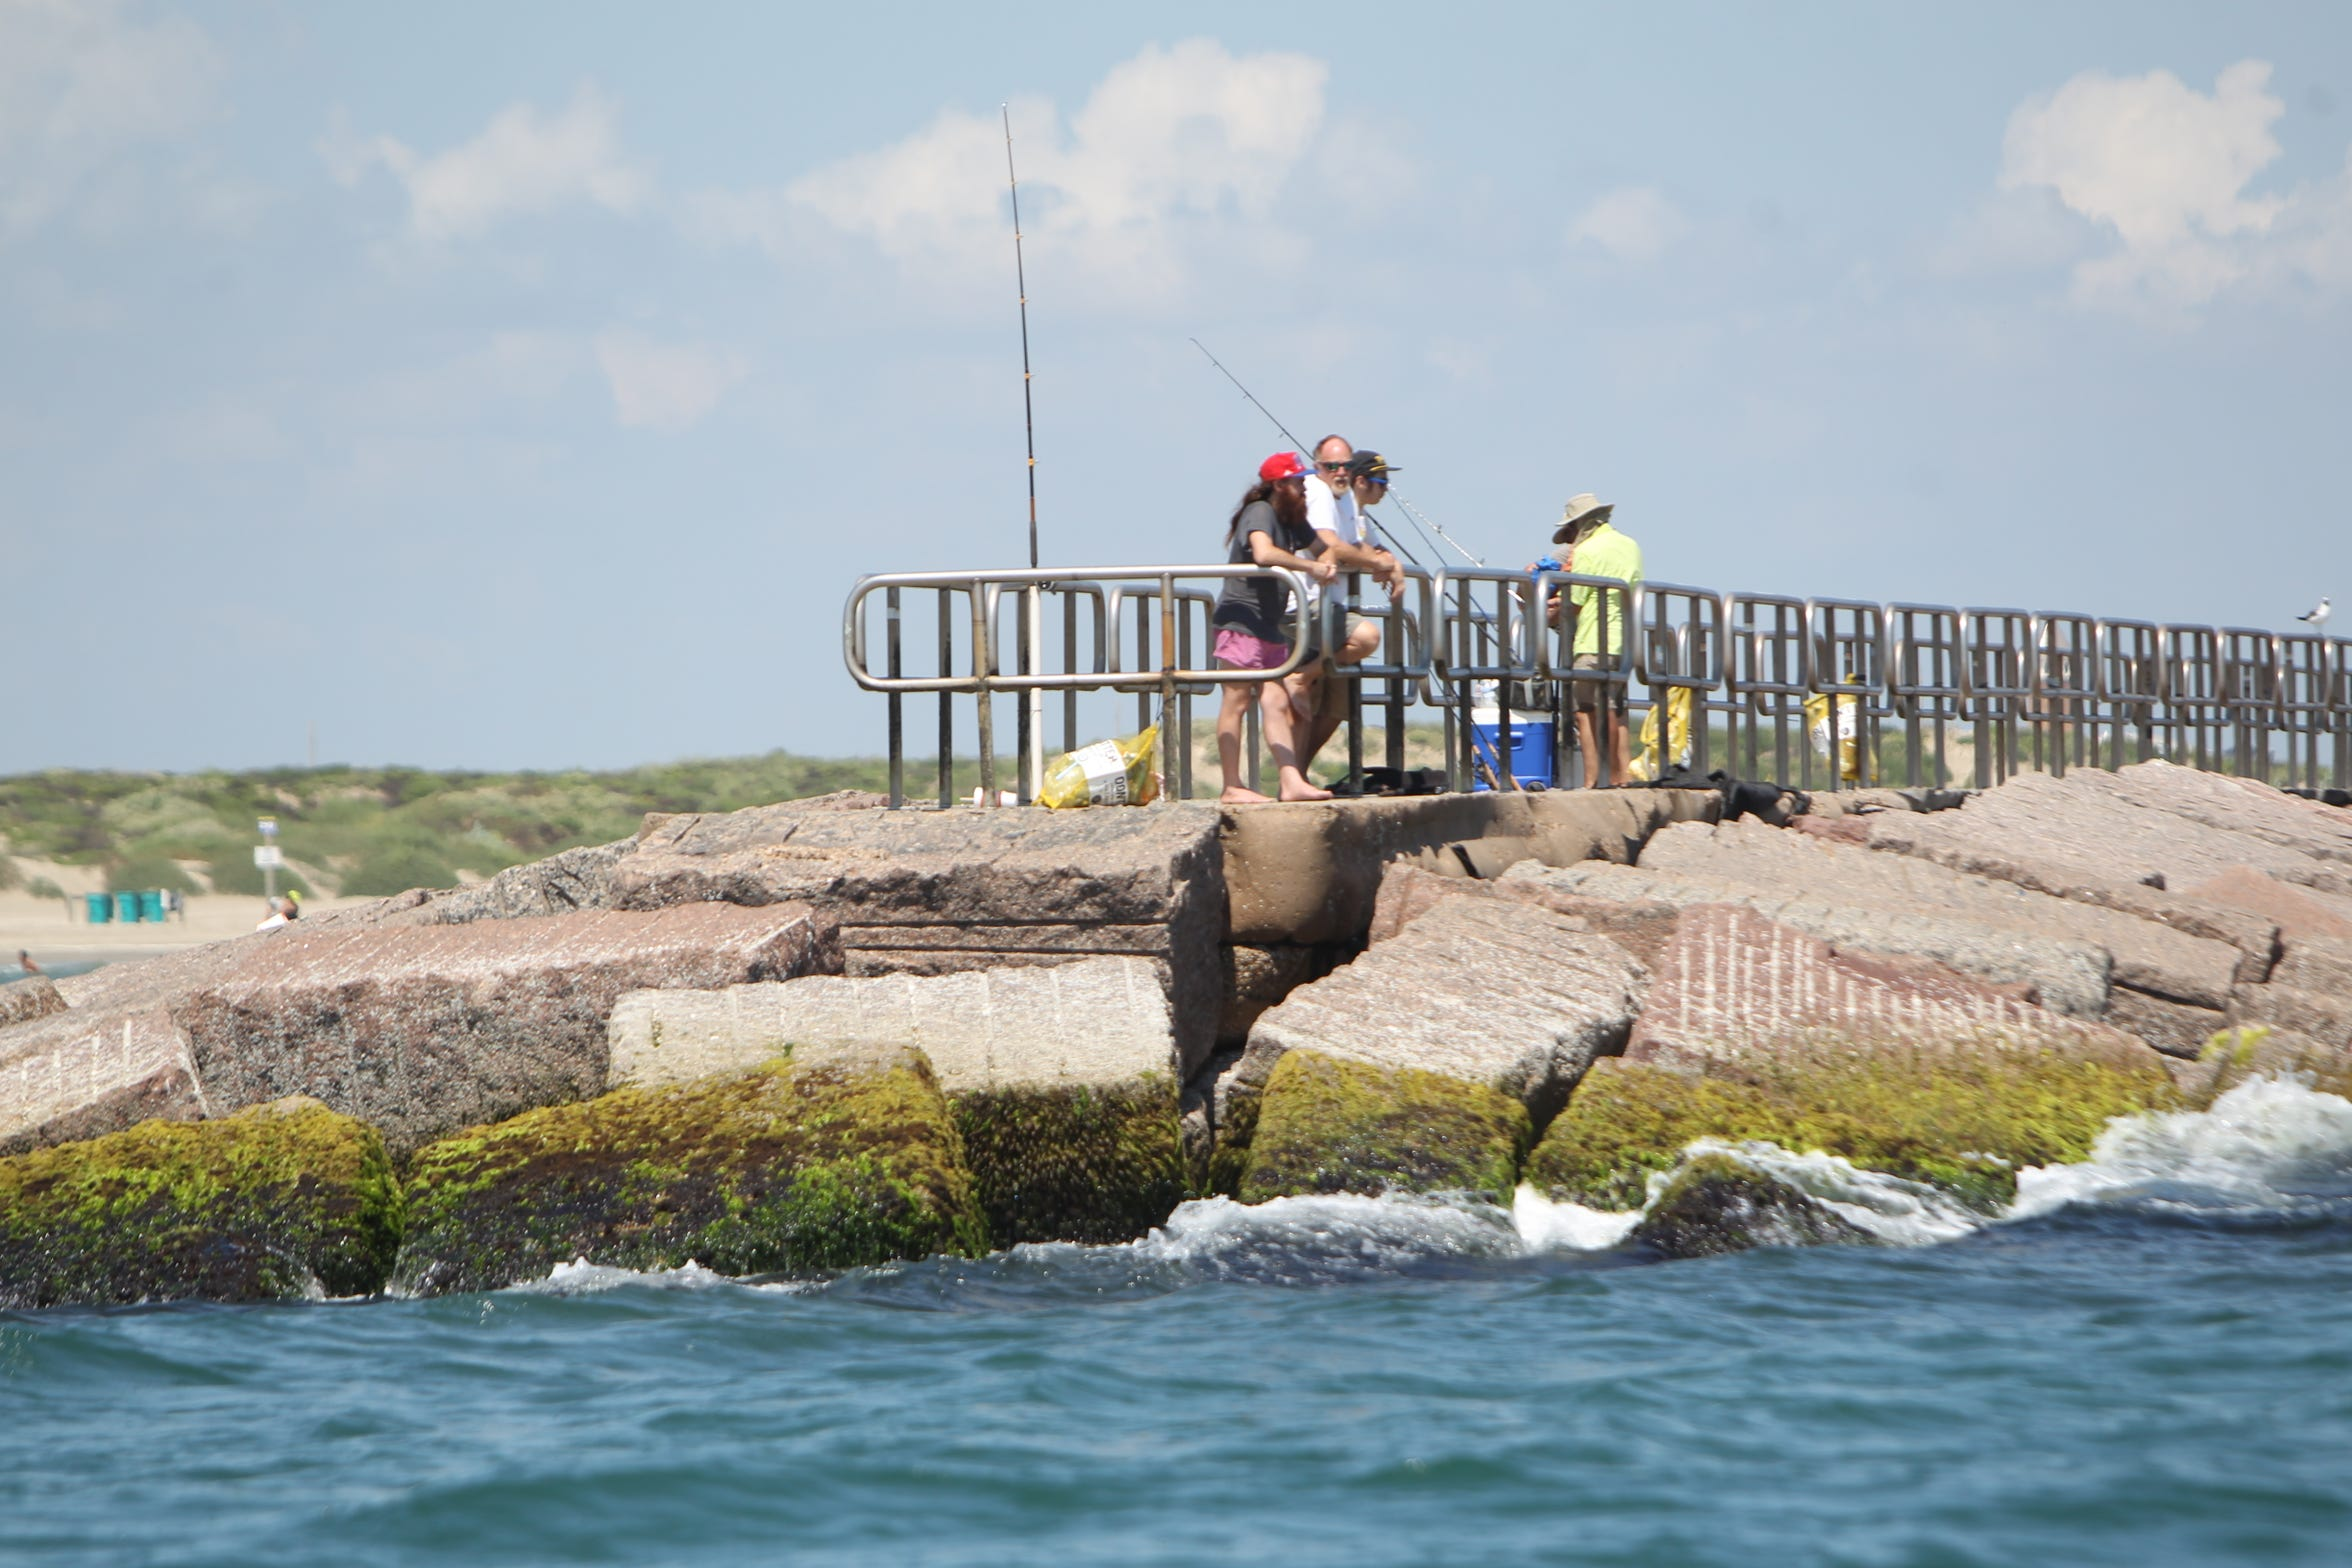 When the waves settle around the Packery Channel jetty, tarpon anglers begin searching for surfacing tarpon.